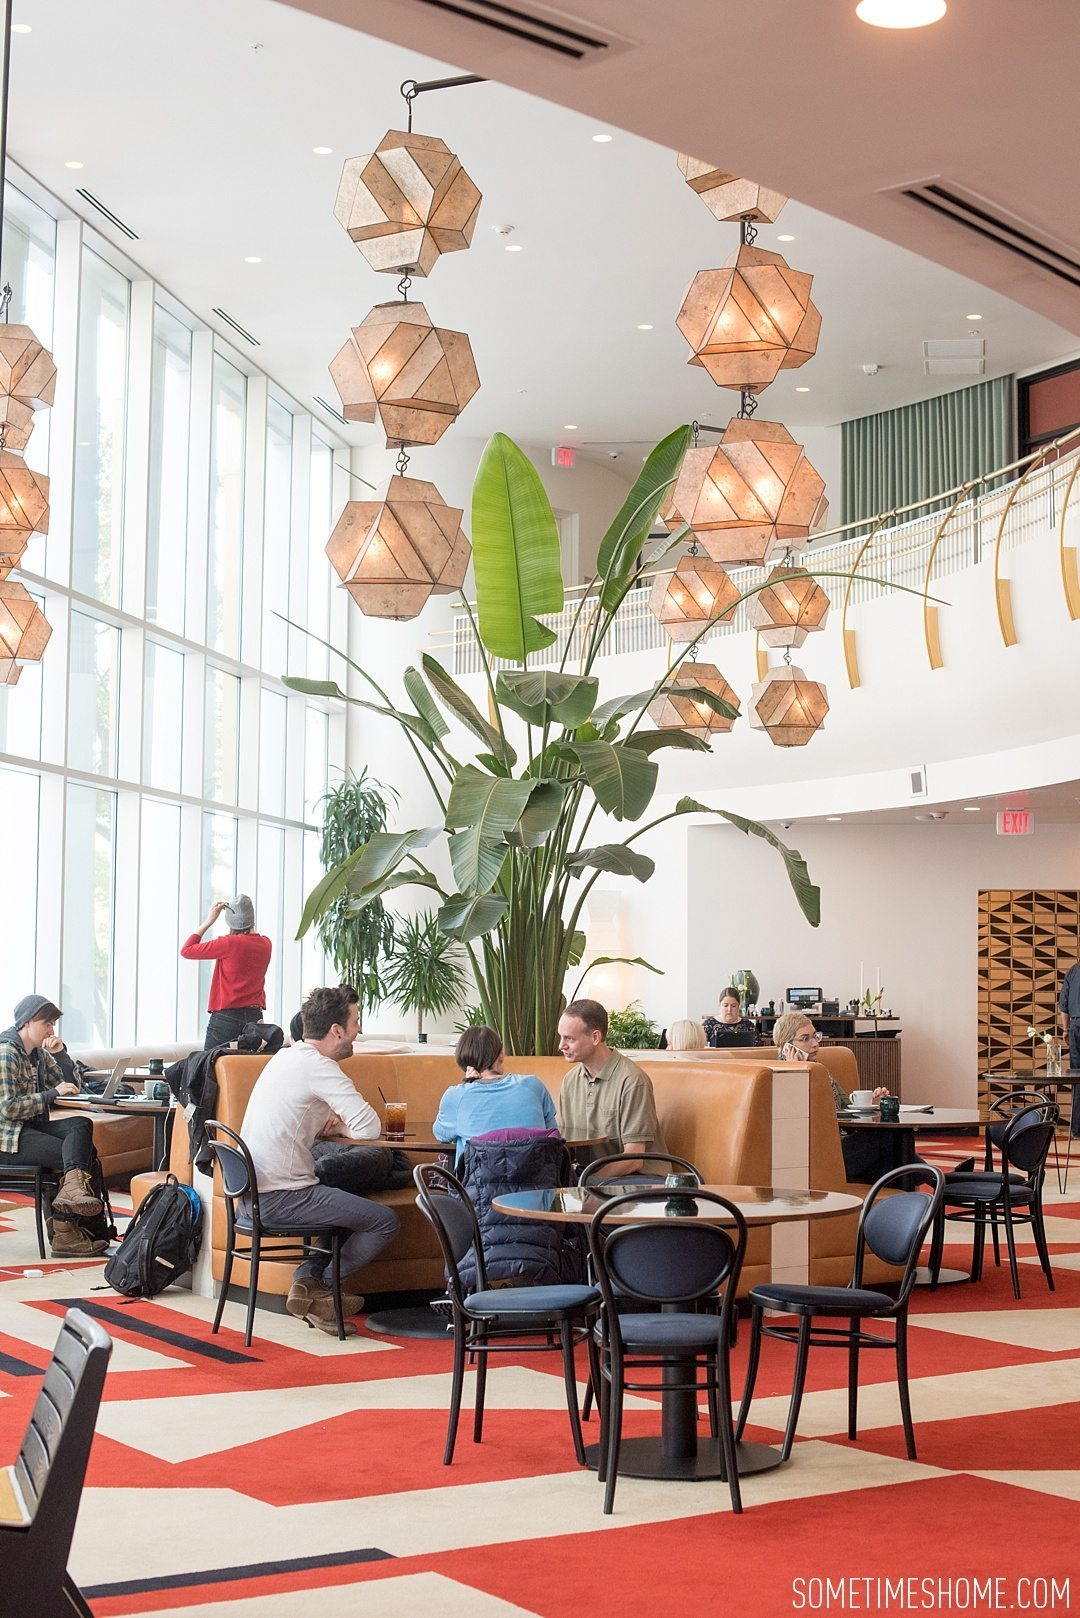 Incredible Downtown Durham Staycation Schedule. Sometimes Home travel advice and information. Photo of the mid-century modern interior of the Durham Hotel.